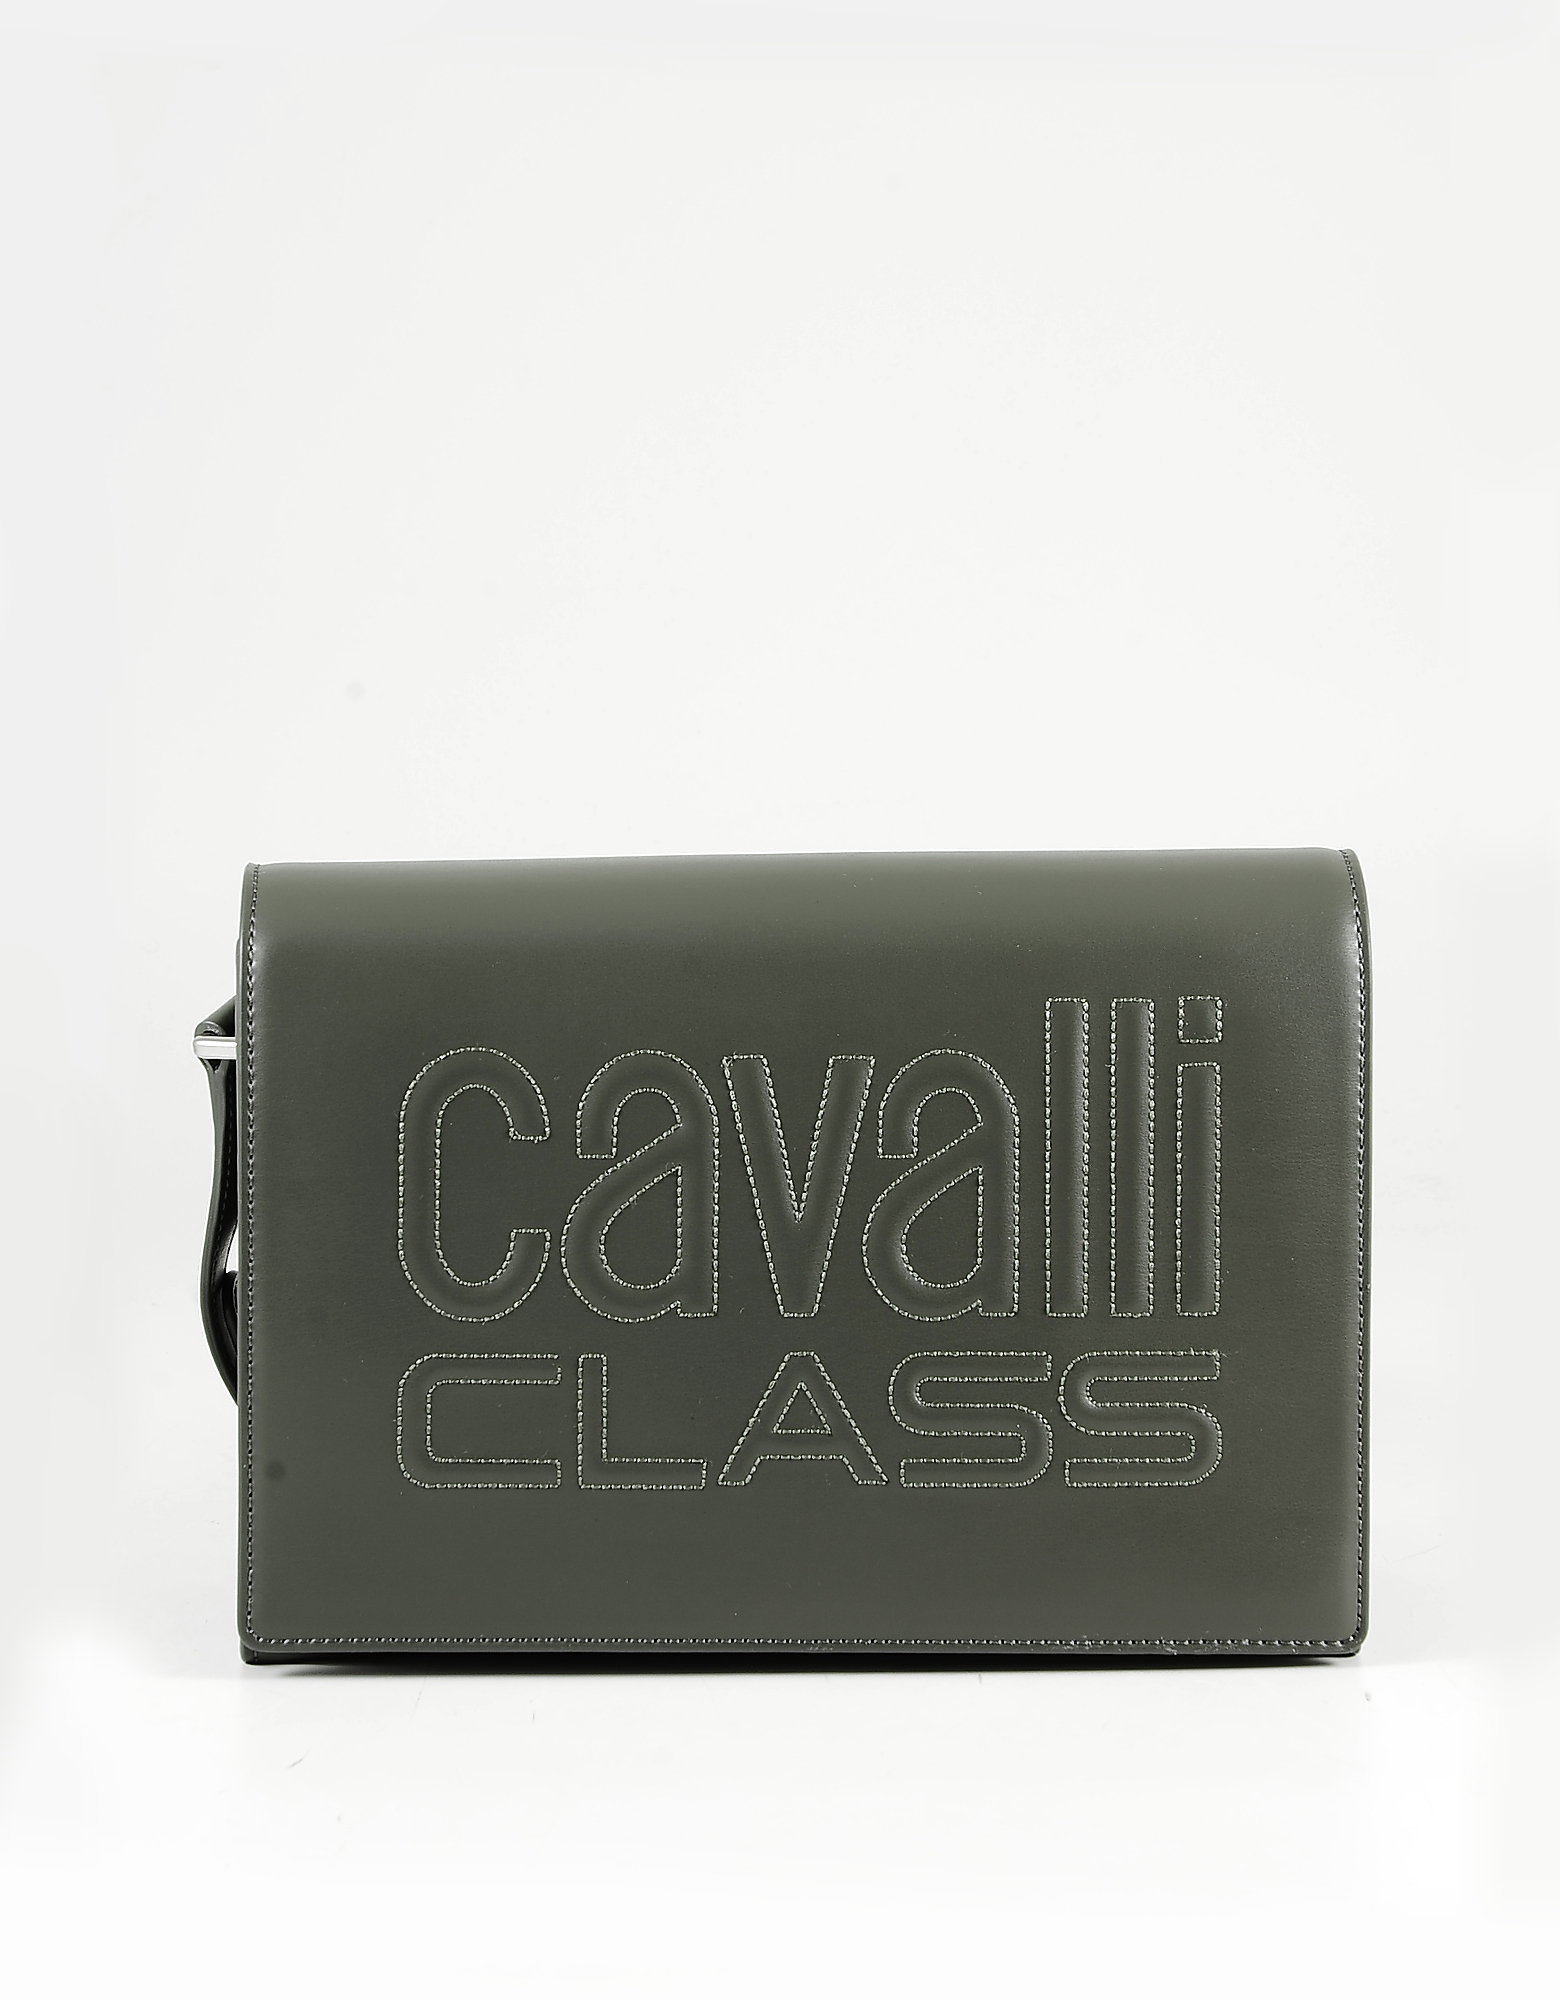 Class Roberto Cavalli Designer Handbags, Militaty Green Eco Leather Flap top Shoulder Bag